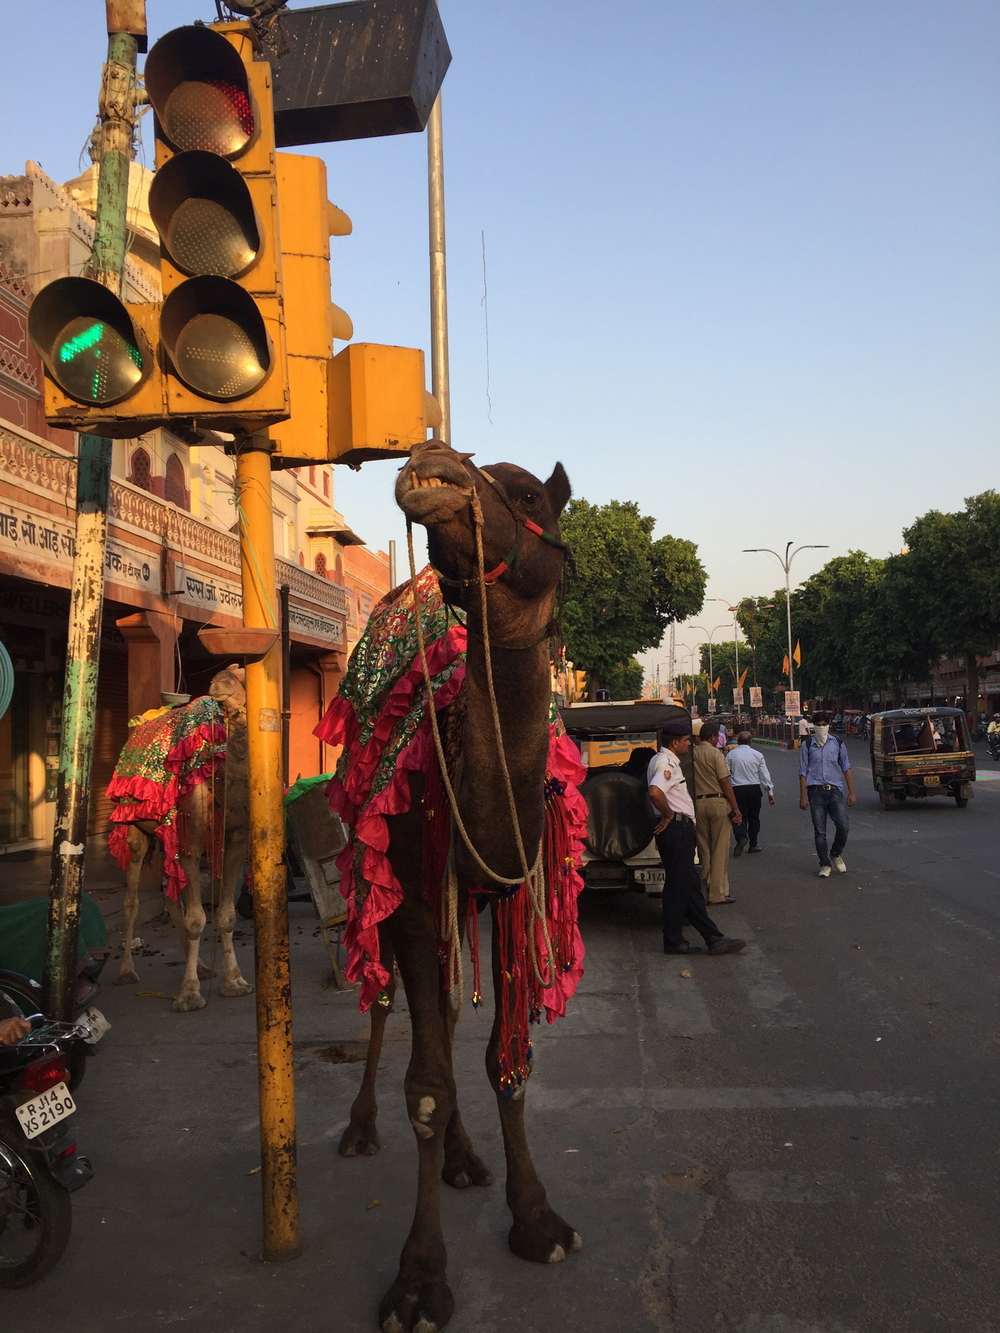 Camel waiting for a traffic light to change in Jaipur, India.